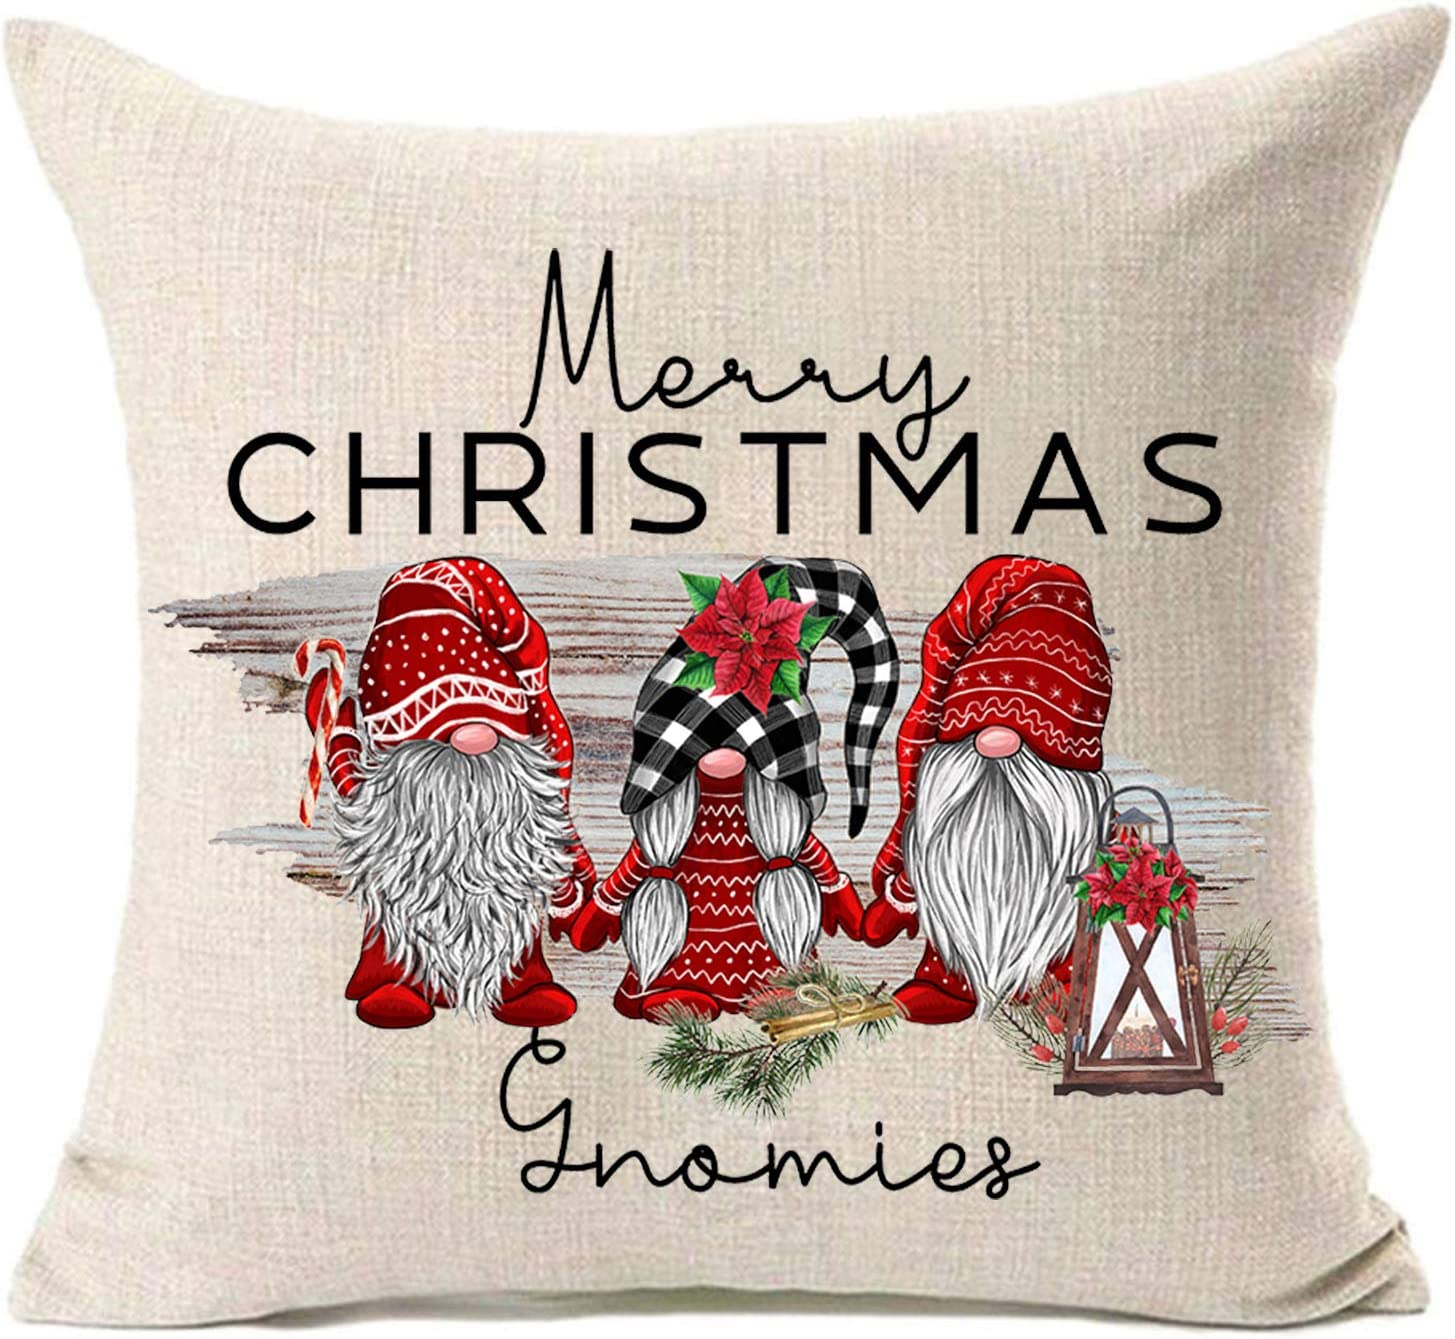 MFGNEH Merry Christmas Pillow Covers 18x18 Inches Gnomies Christmas Decorations Farmhouse Cotton Linen Throw Pillow Case Cushion Cover,Gnome Christmas Decor